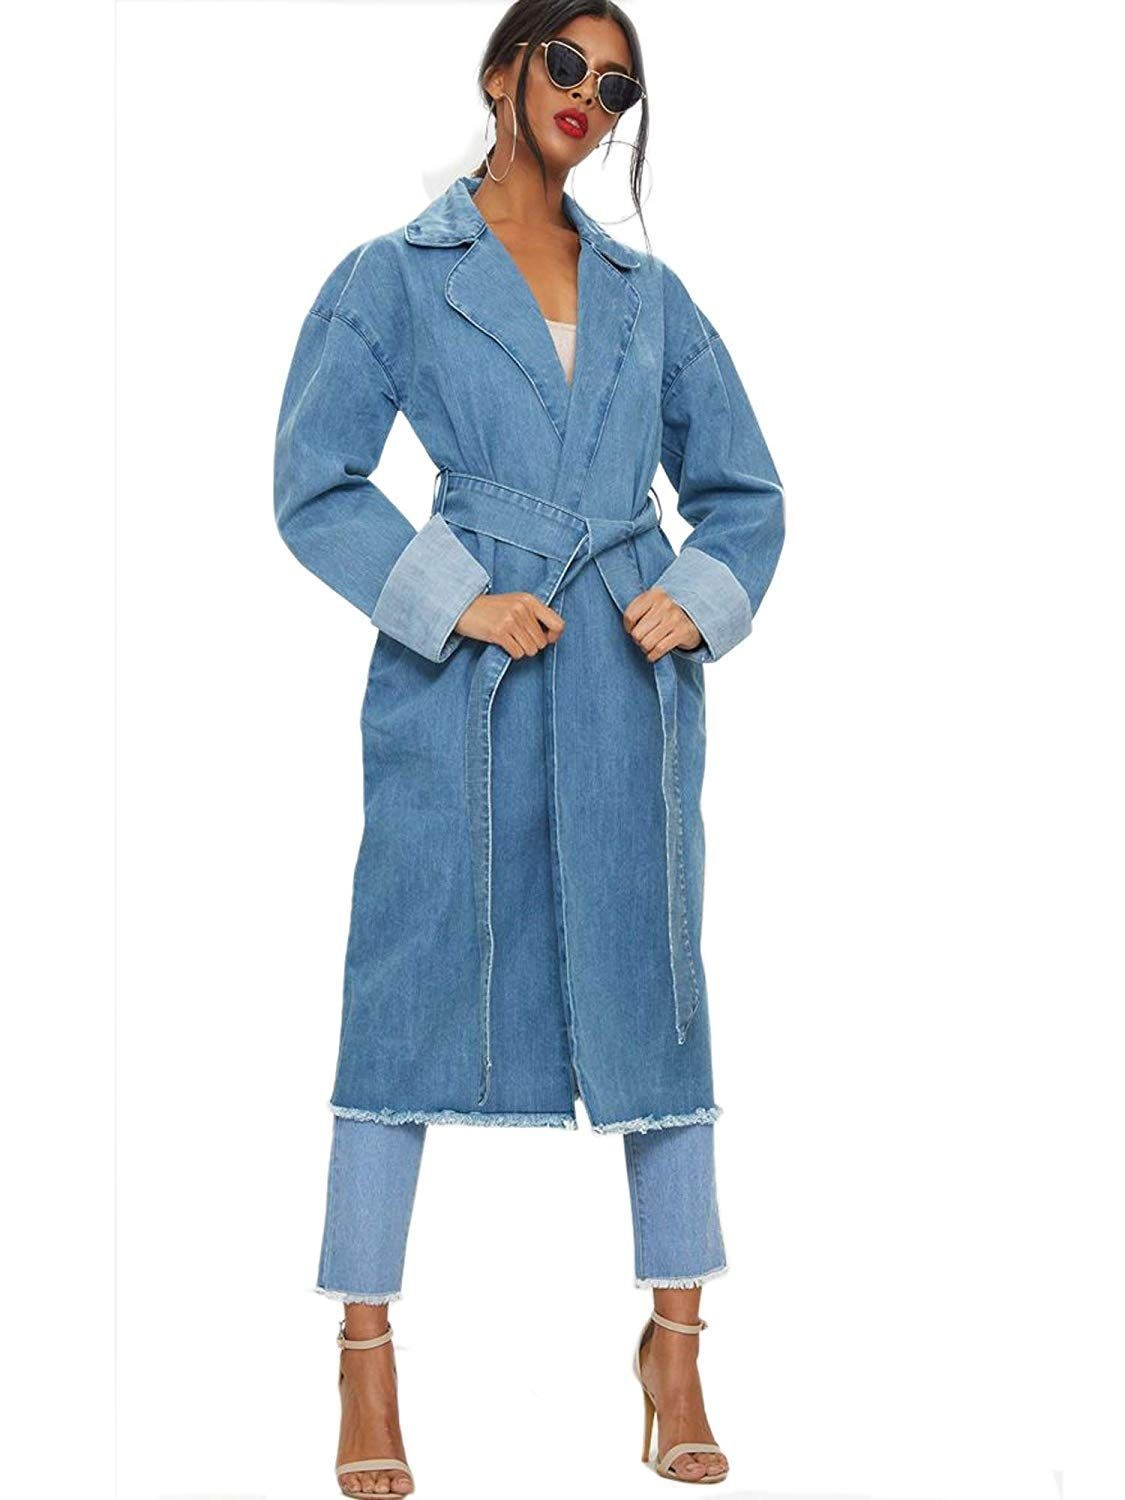 A Denim Trench + Matching Skinnies